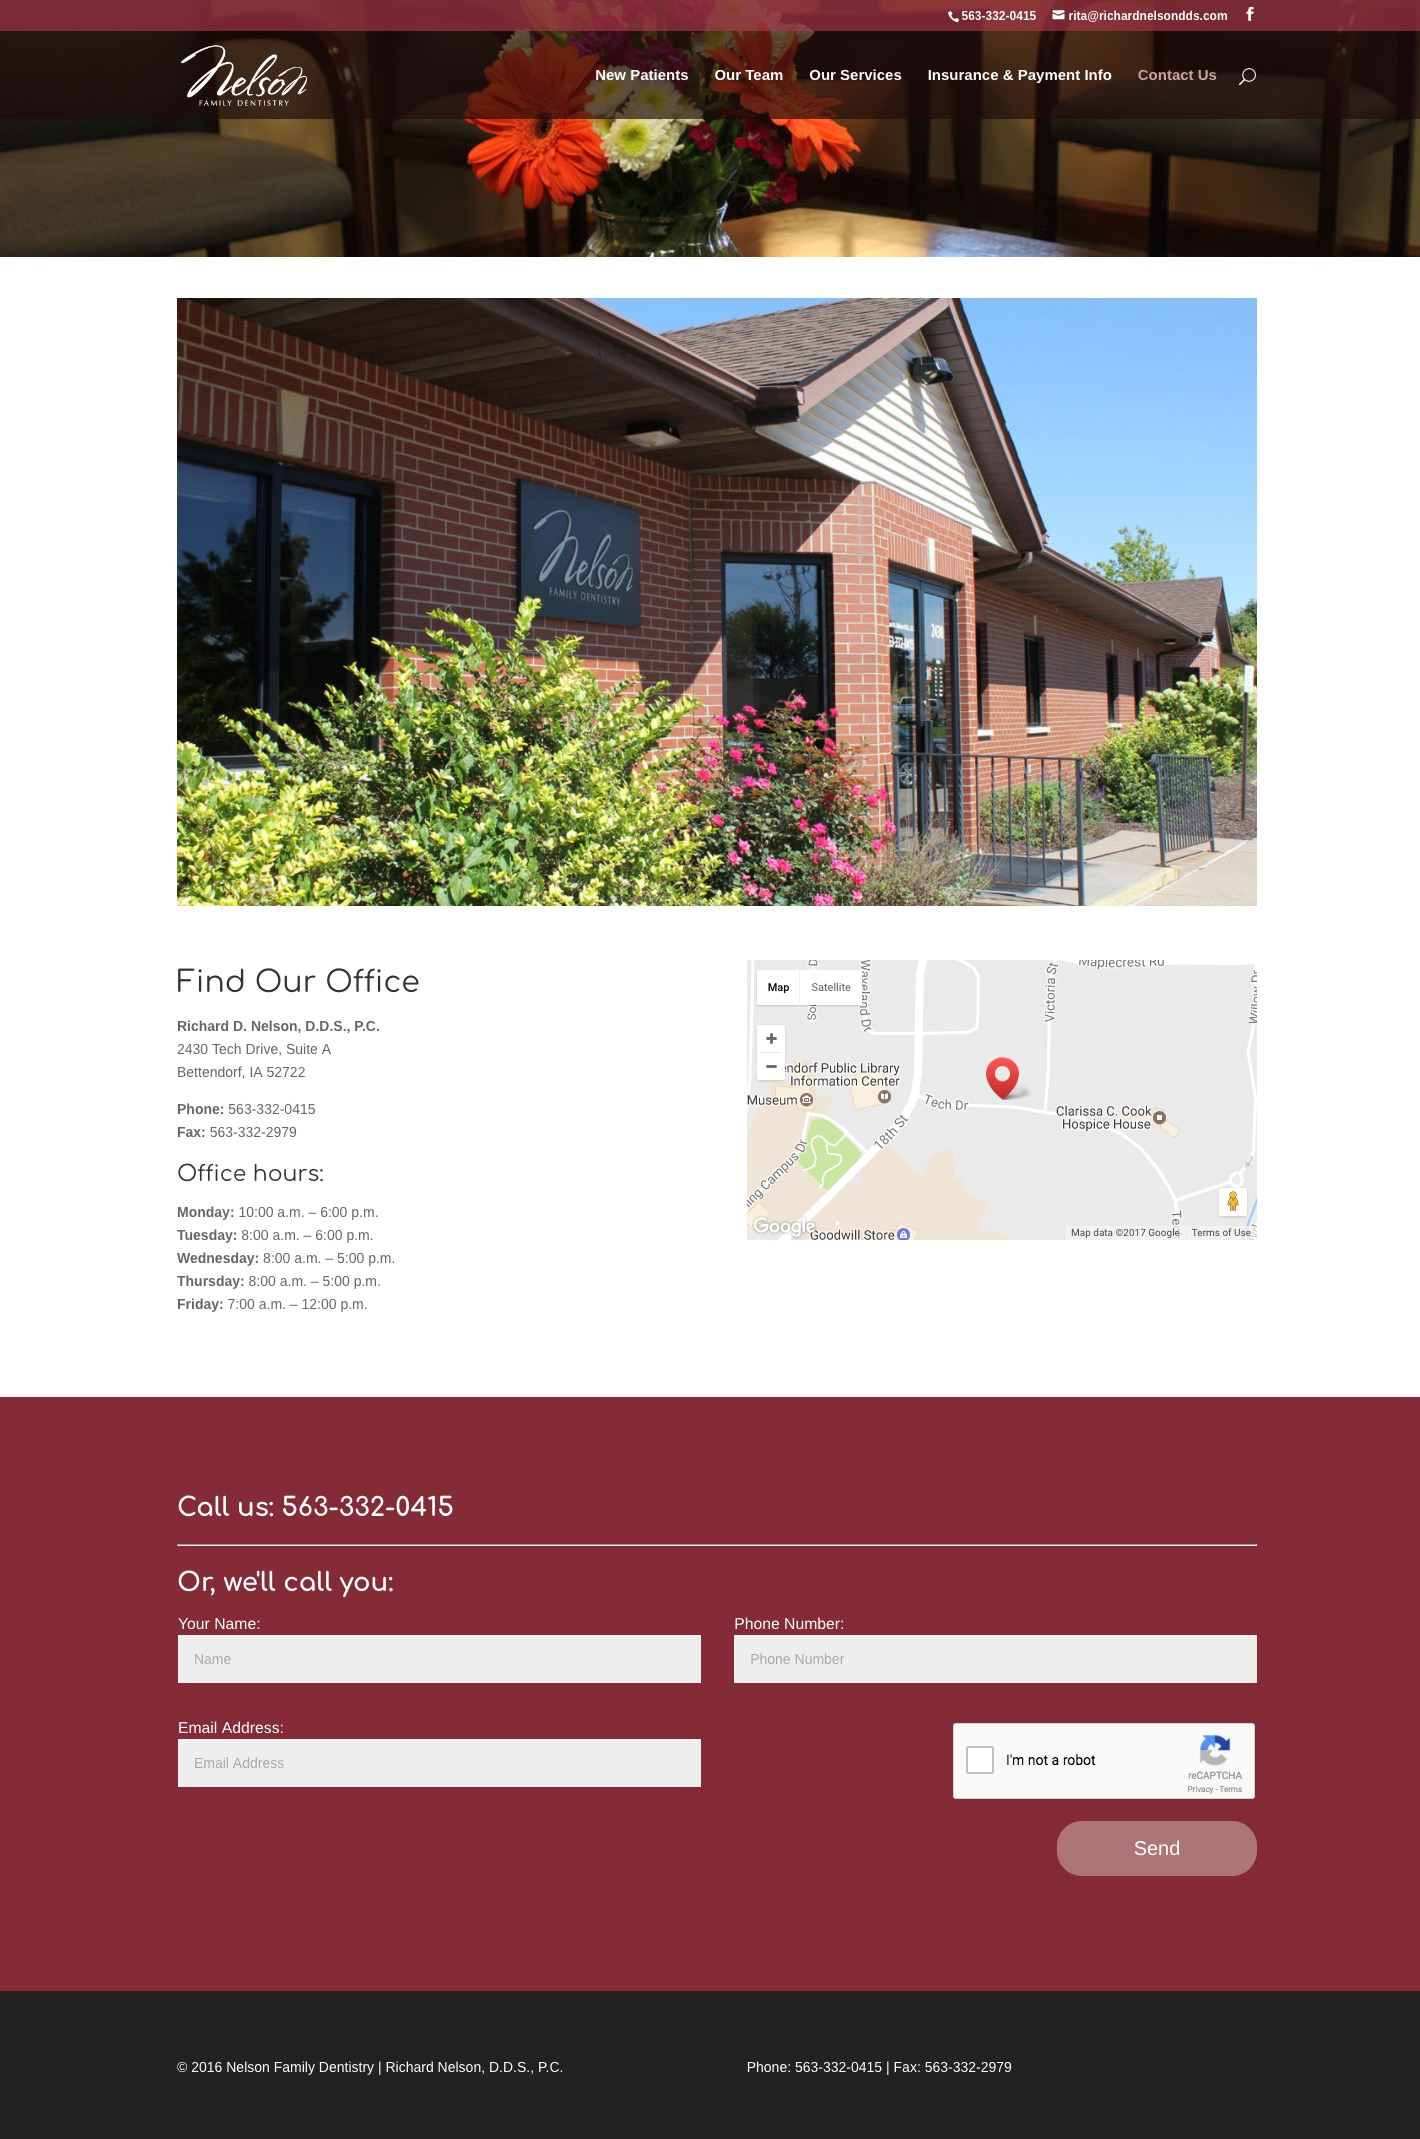 Nelson Family Dentistry contact page screenshot